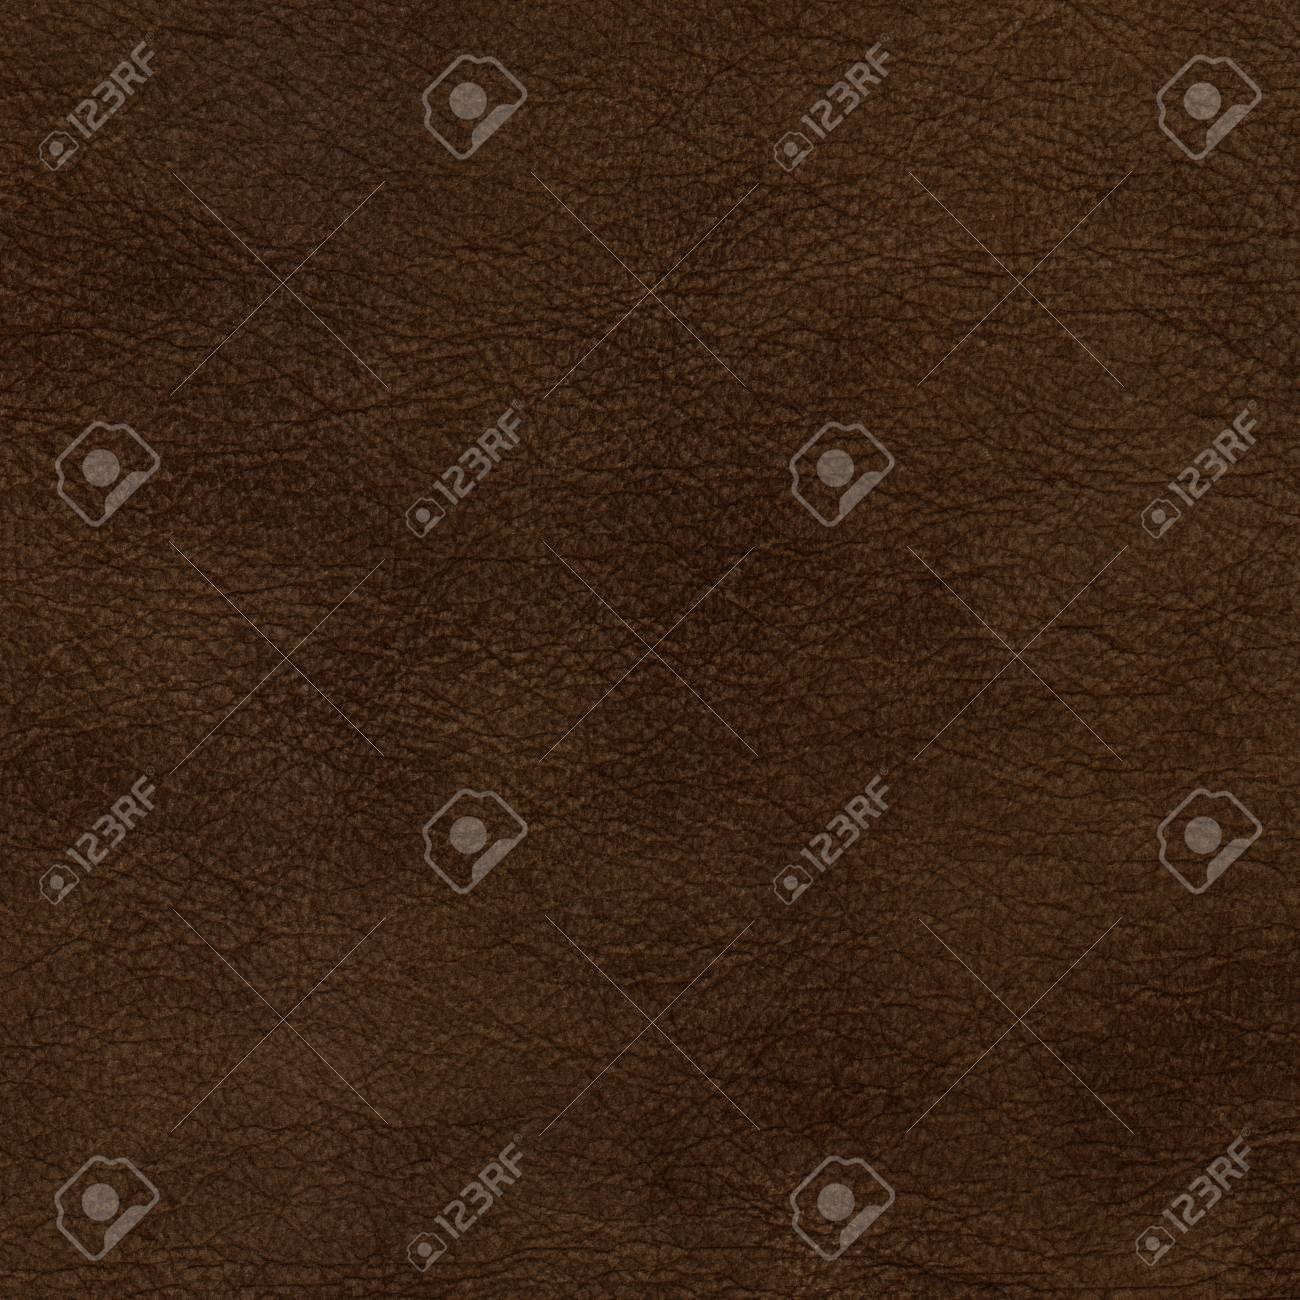 Brown leather texture closeup Stock Photo - 19919401